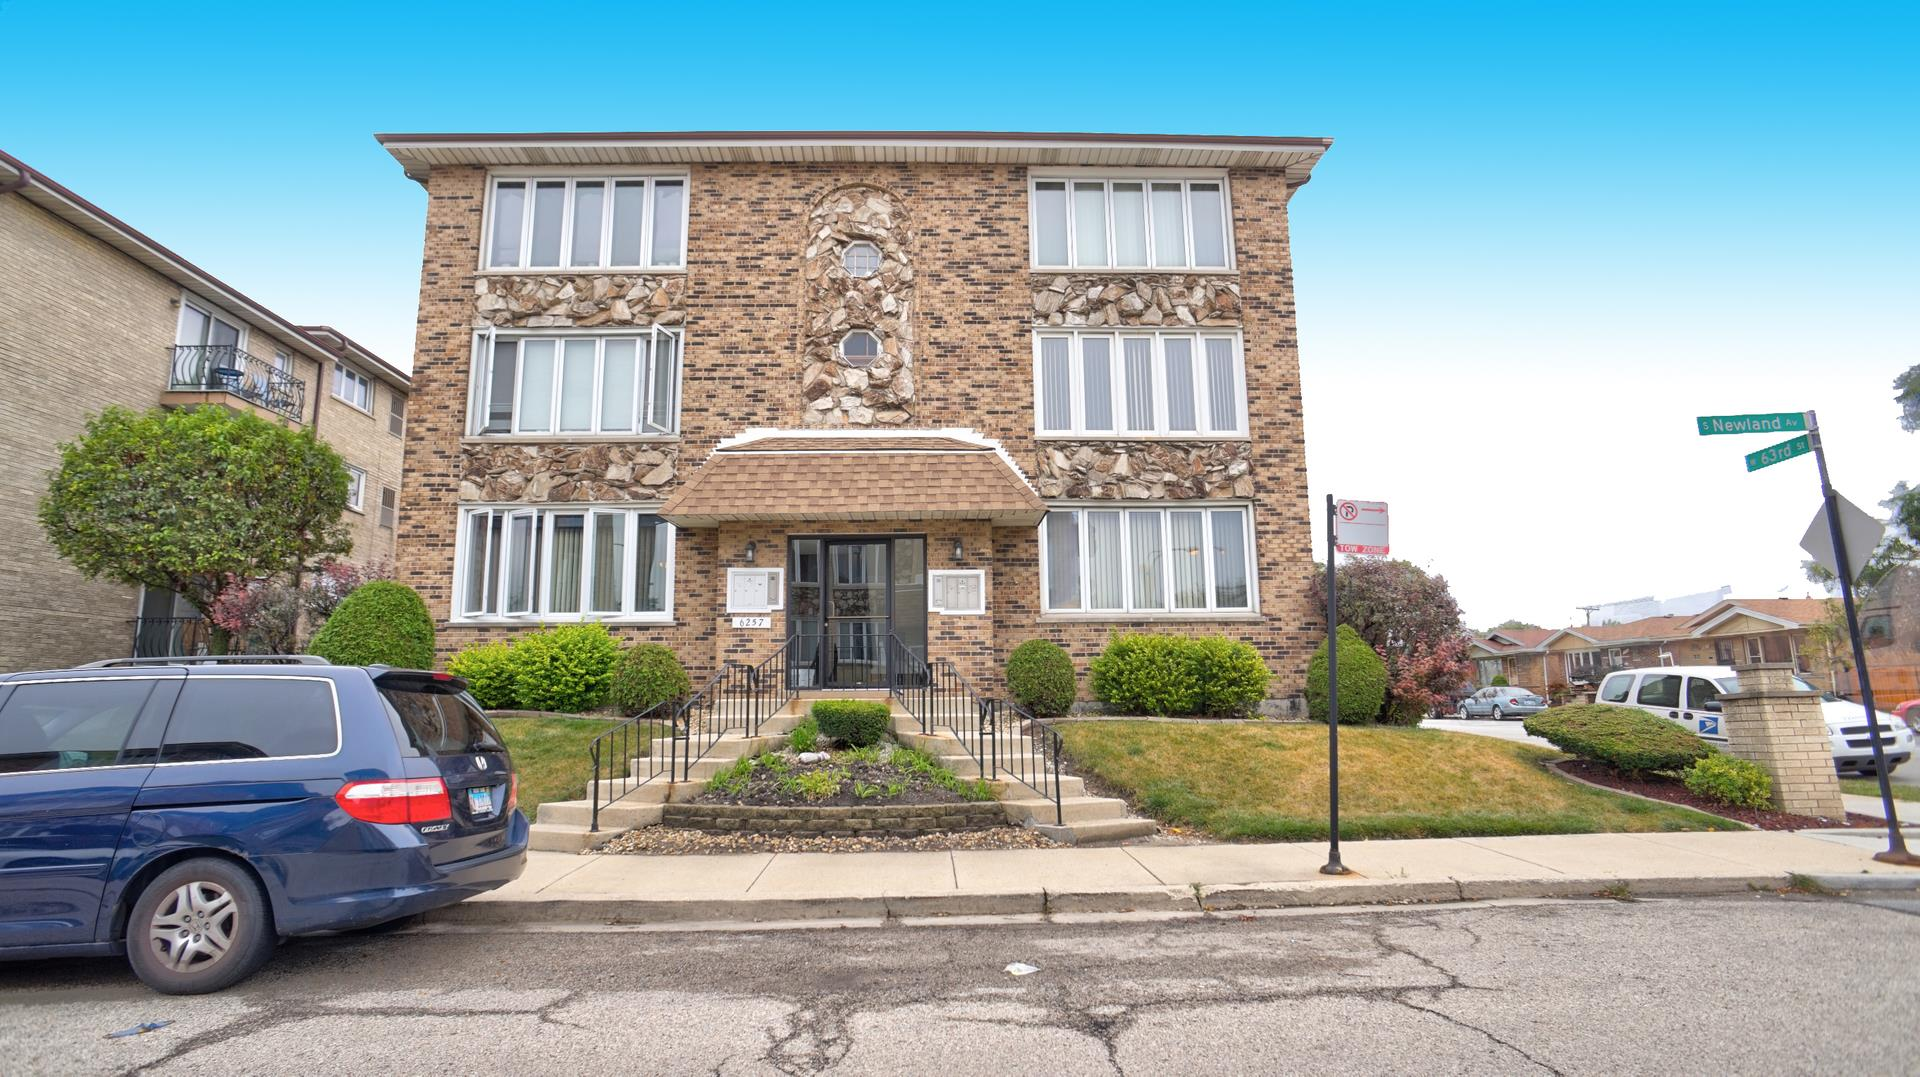 6257 S Newland Avenue #1N, Chicago, IL 60638 - MLS#: 10855328